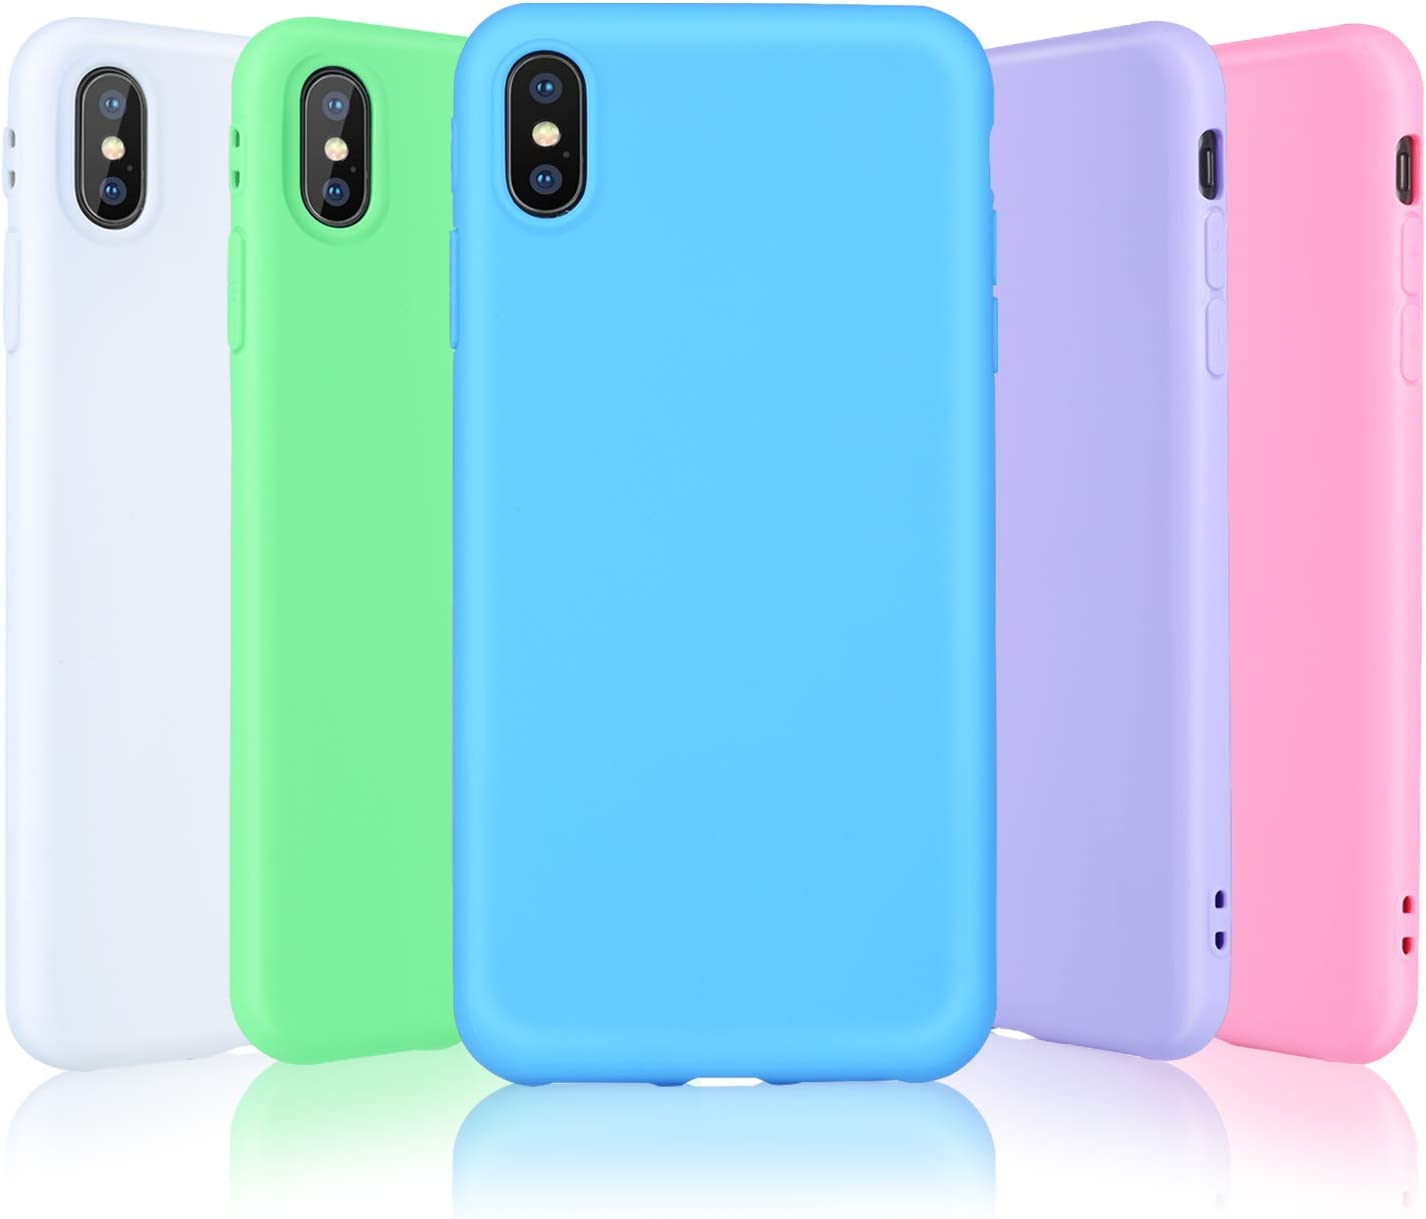 Pofesun Case for iPhone Xs Max, 5 Pack Ultra Thin Slim Soft Silicone Gel Rubber Bumper Phone Case Protective Cover Compatible for iPhone Xs Max 6.5 inch (2018) -White,Pink,Green,Purple,Blue